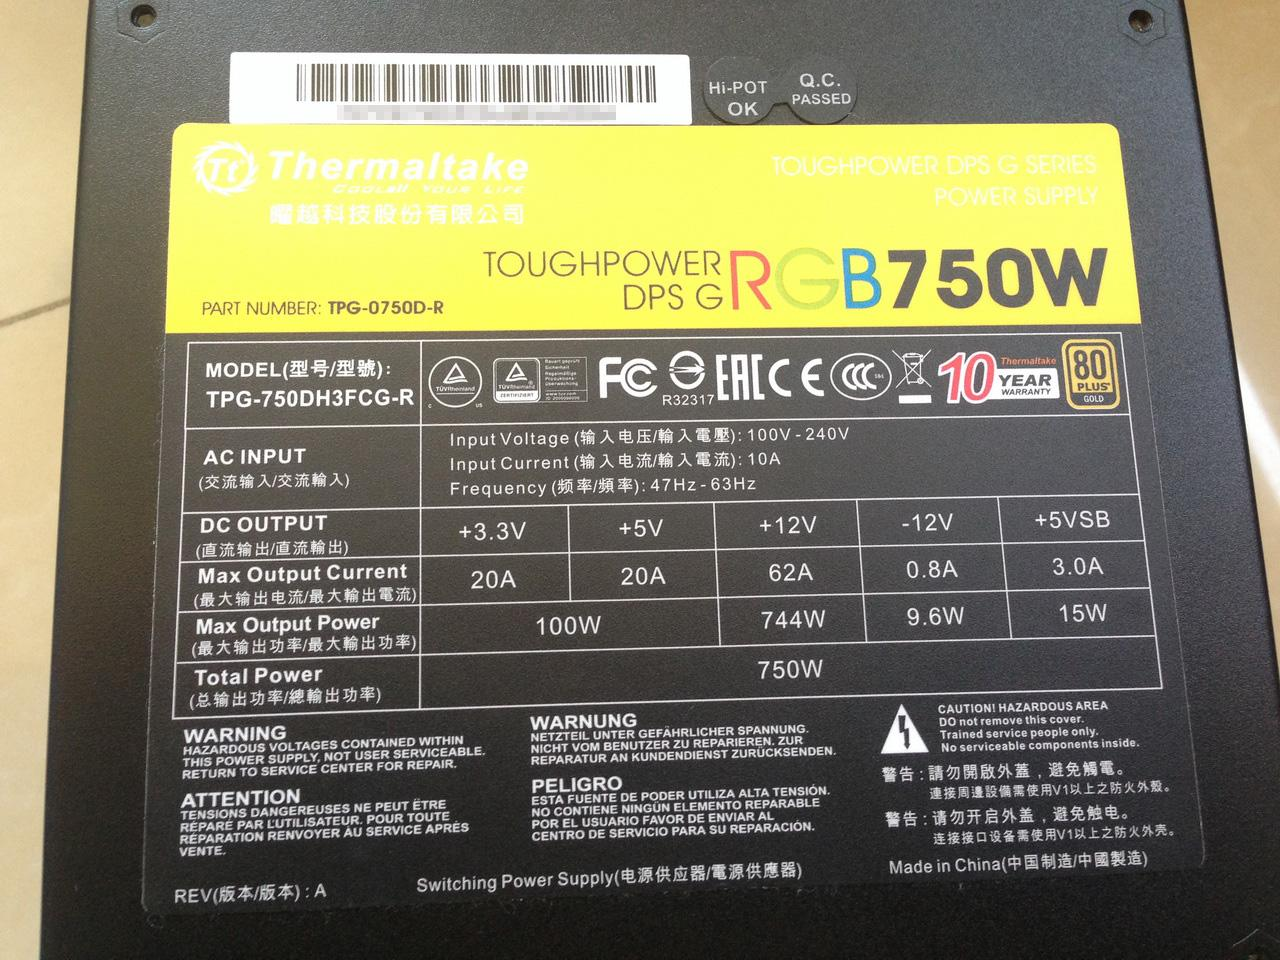 進入未來的時代 TT Toughpower DPS G RGB 750W分享 - XFastest - Toughpower DPS G RGB 750W-09.JPG